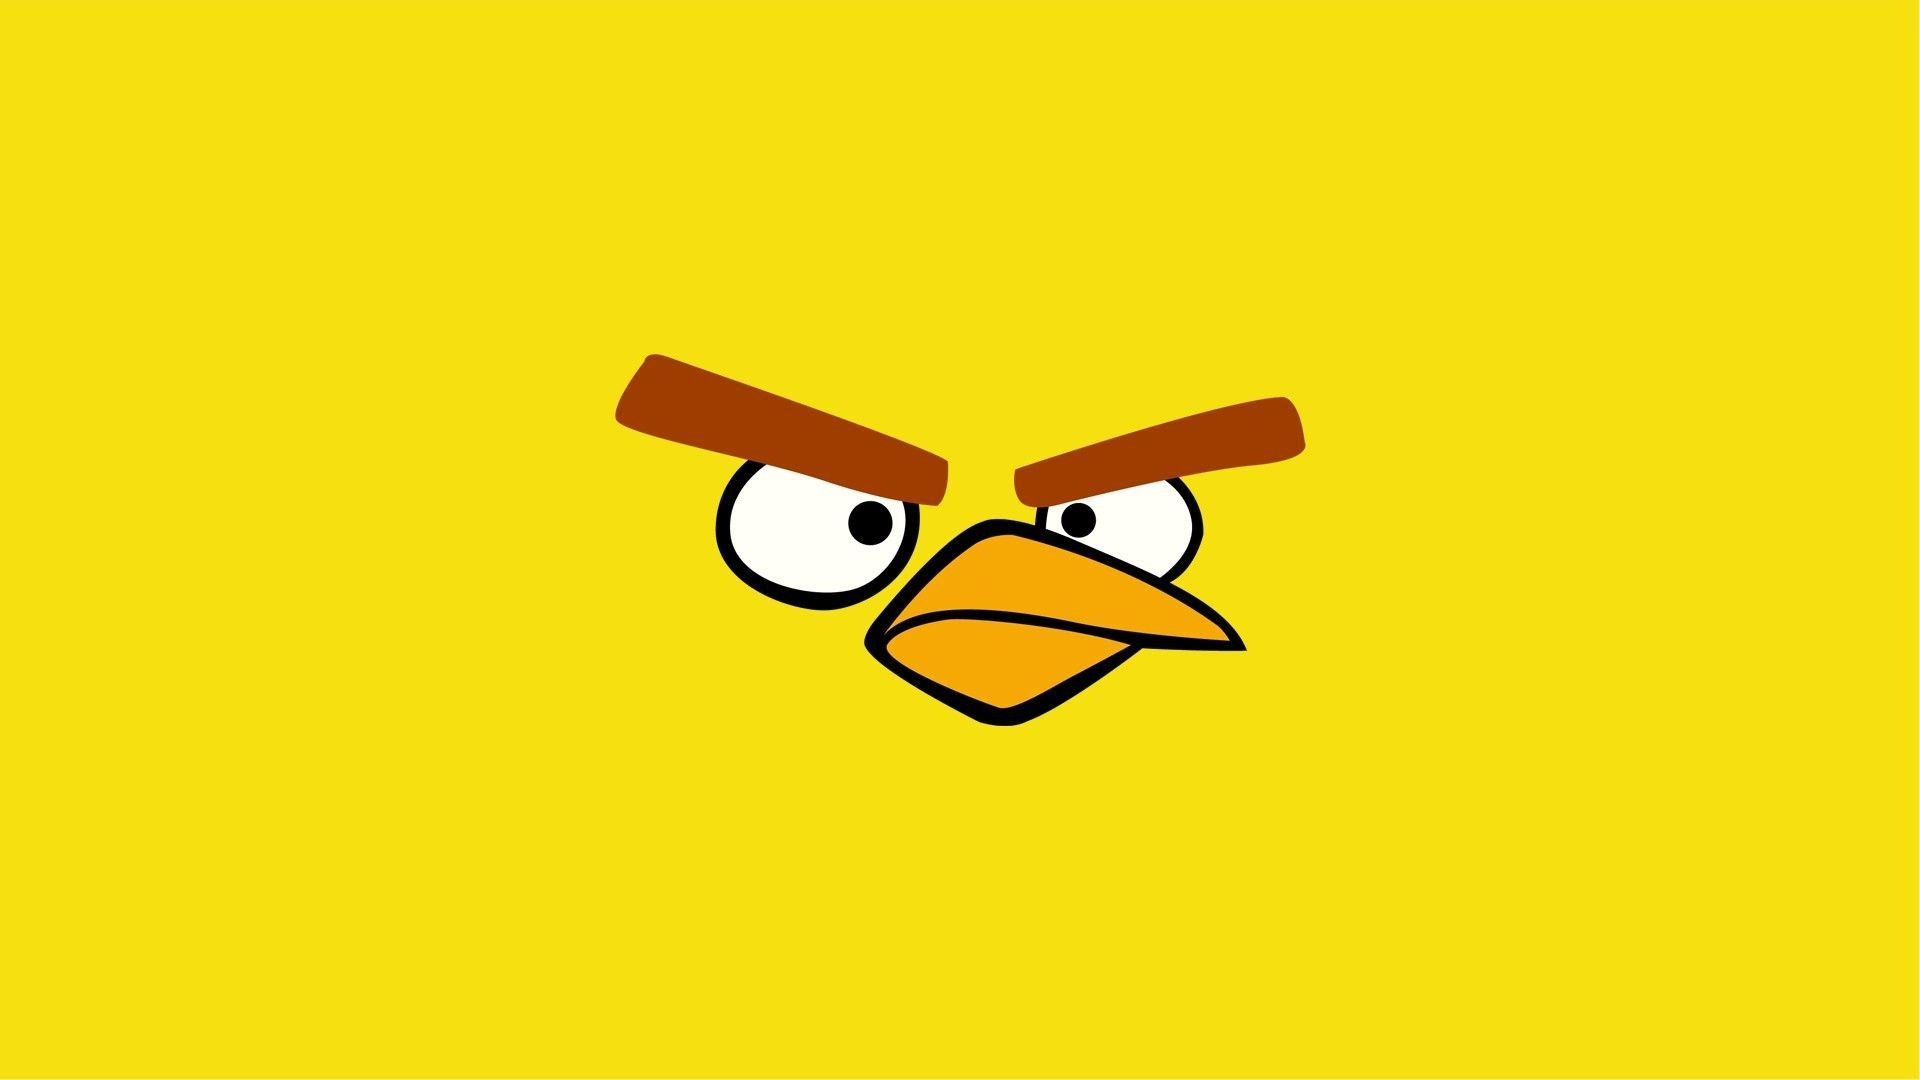 Wallpaper Of Angry Birds